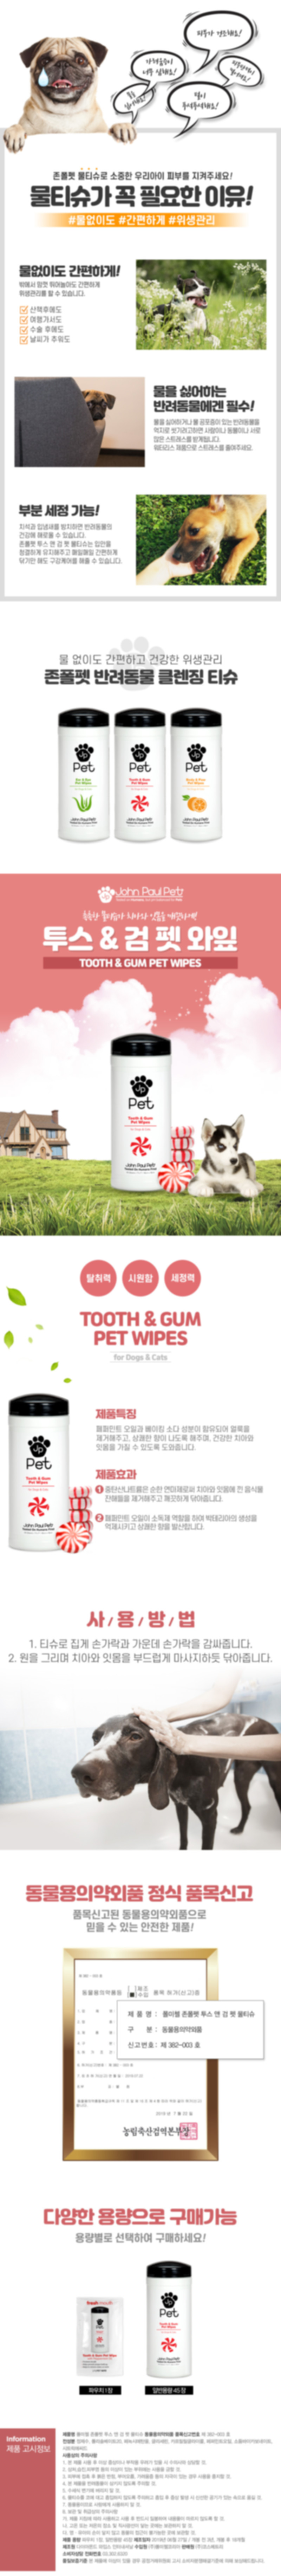 johnpaulpet_tooth&gum_wipes_800.jpg